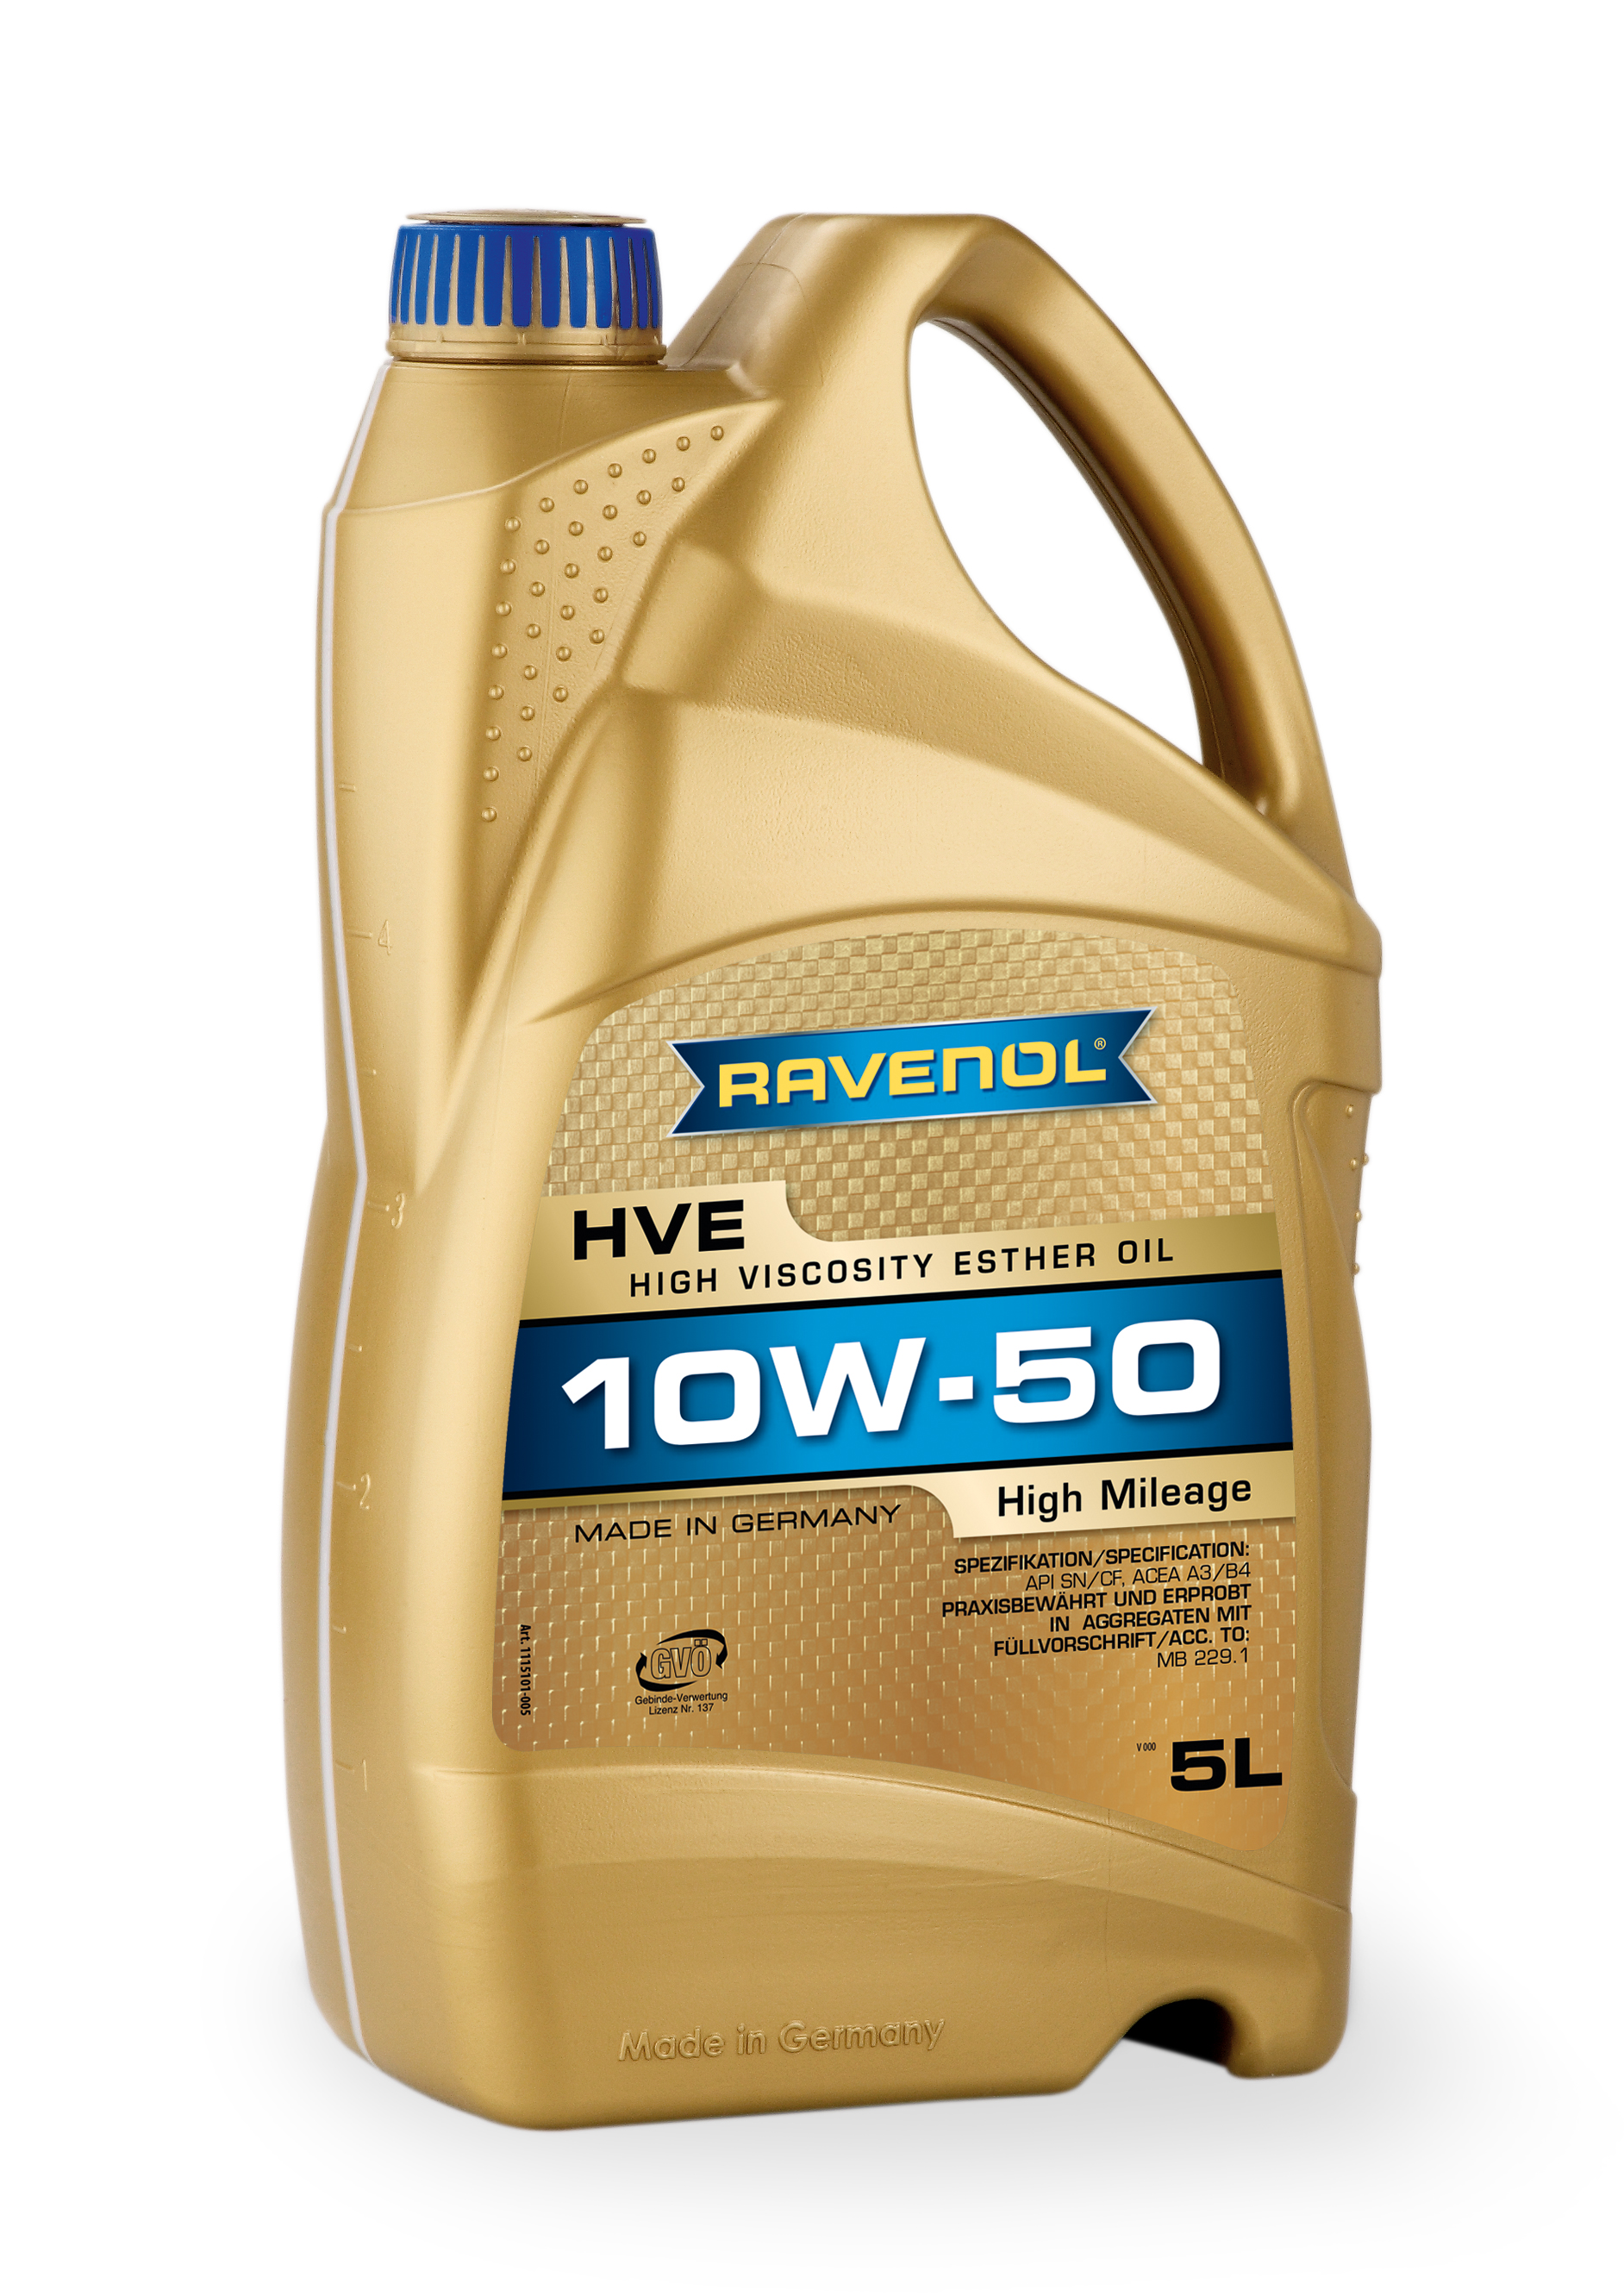 Ravenol HVE 10w-50 Fully Synthetic 5L